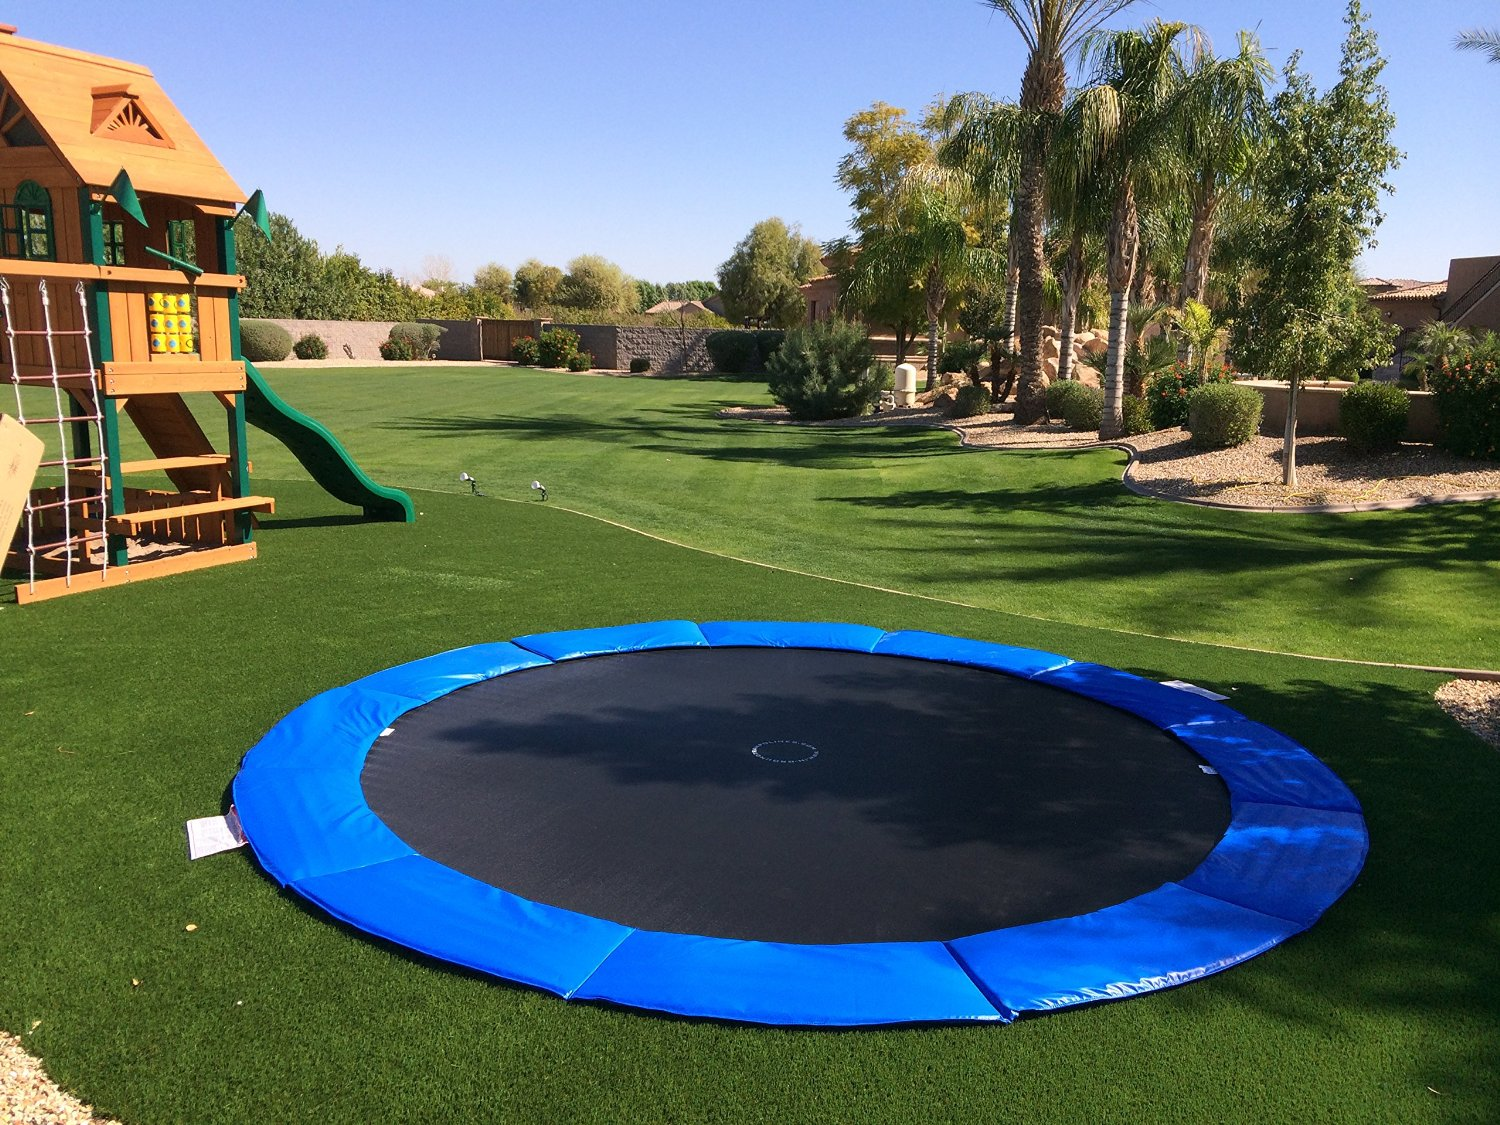 How To Build An In Ground Trampoline The Handy Mano